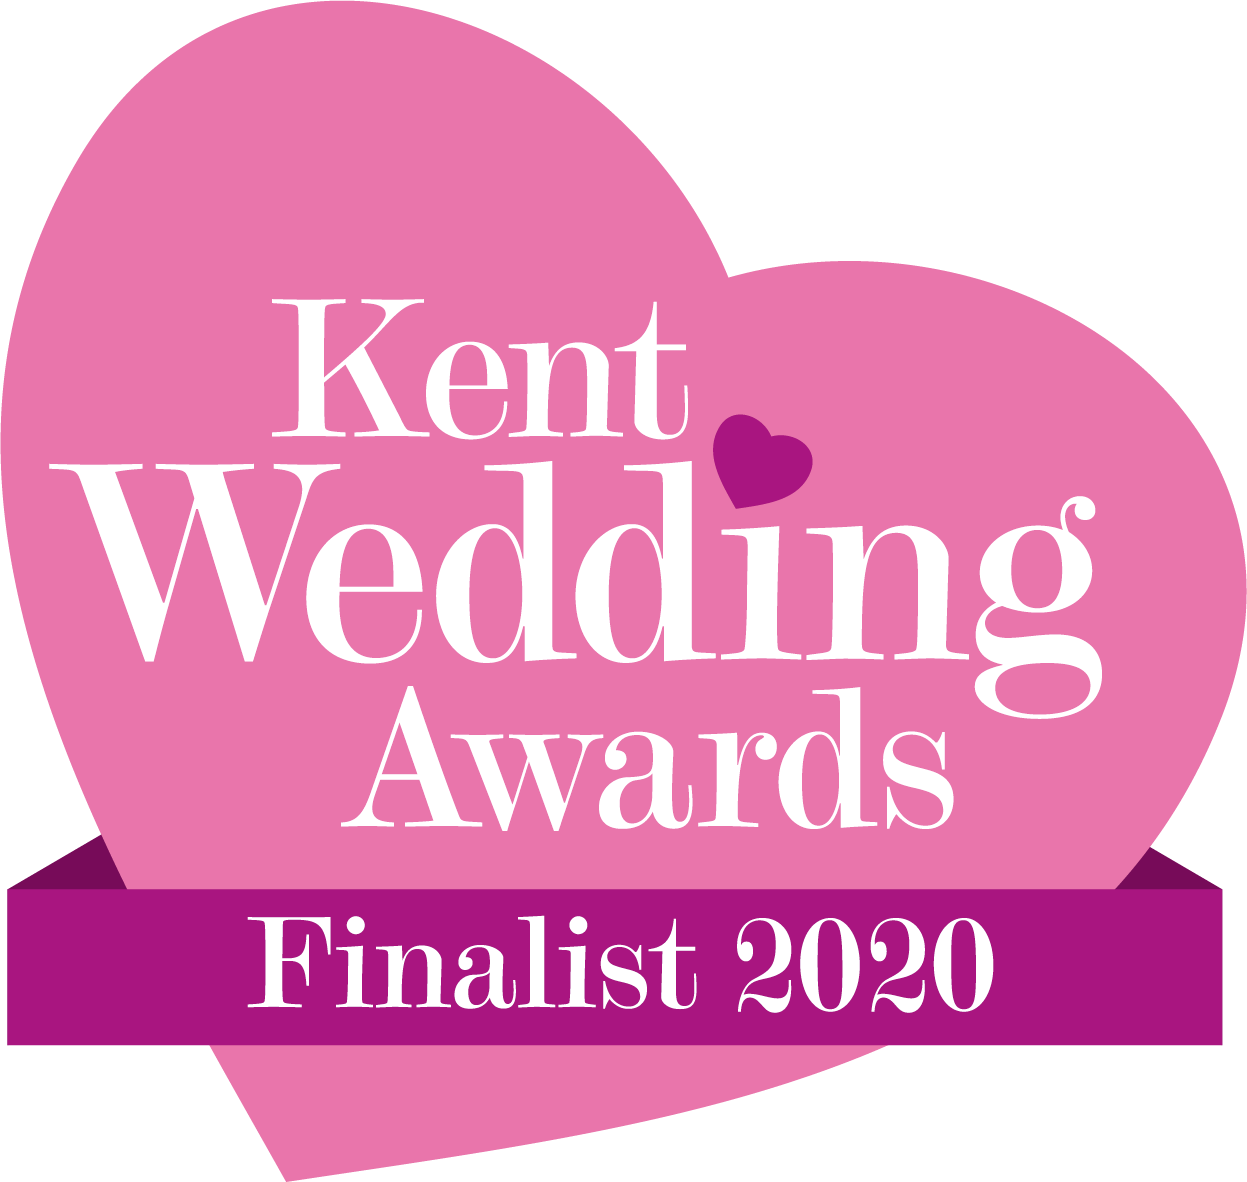 Kent Wedding Awards Finalist 2020